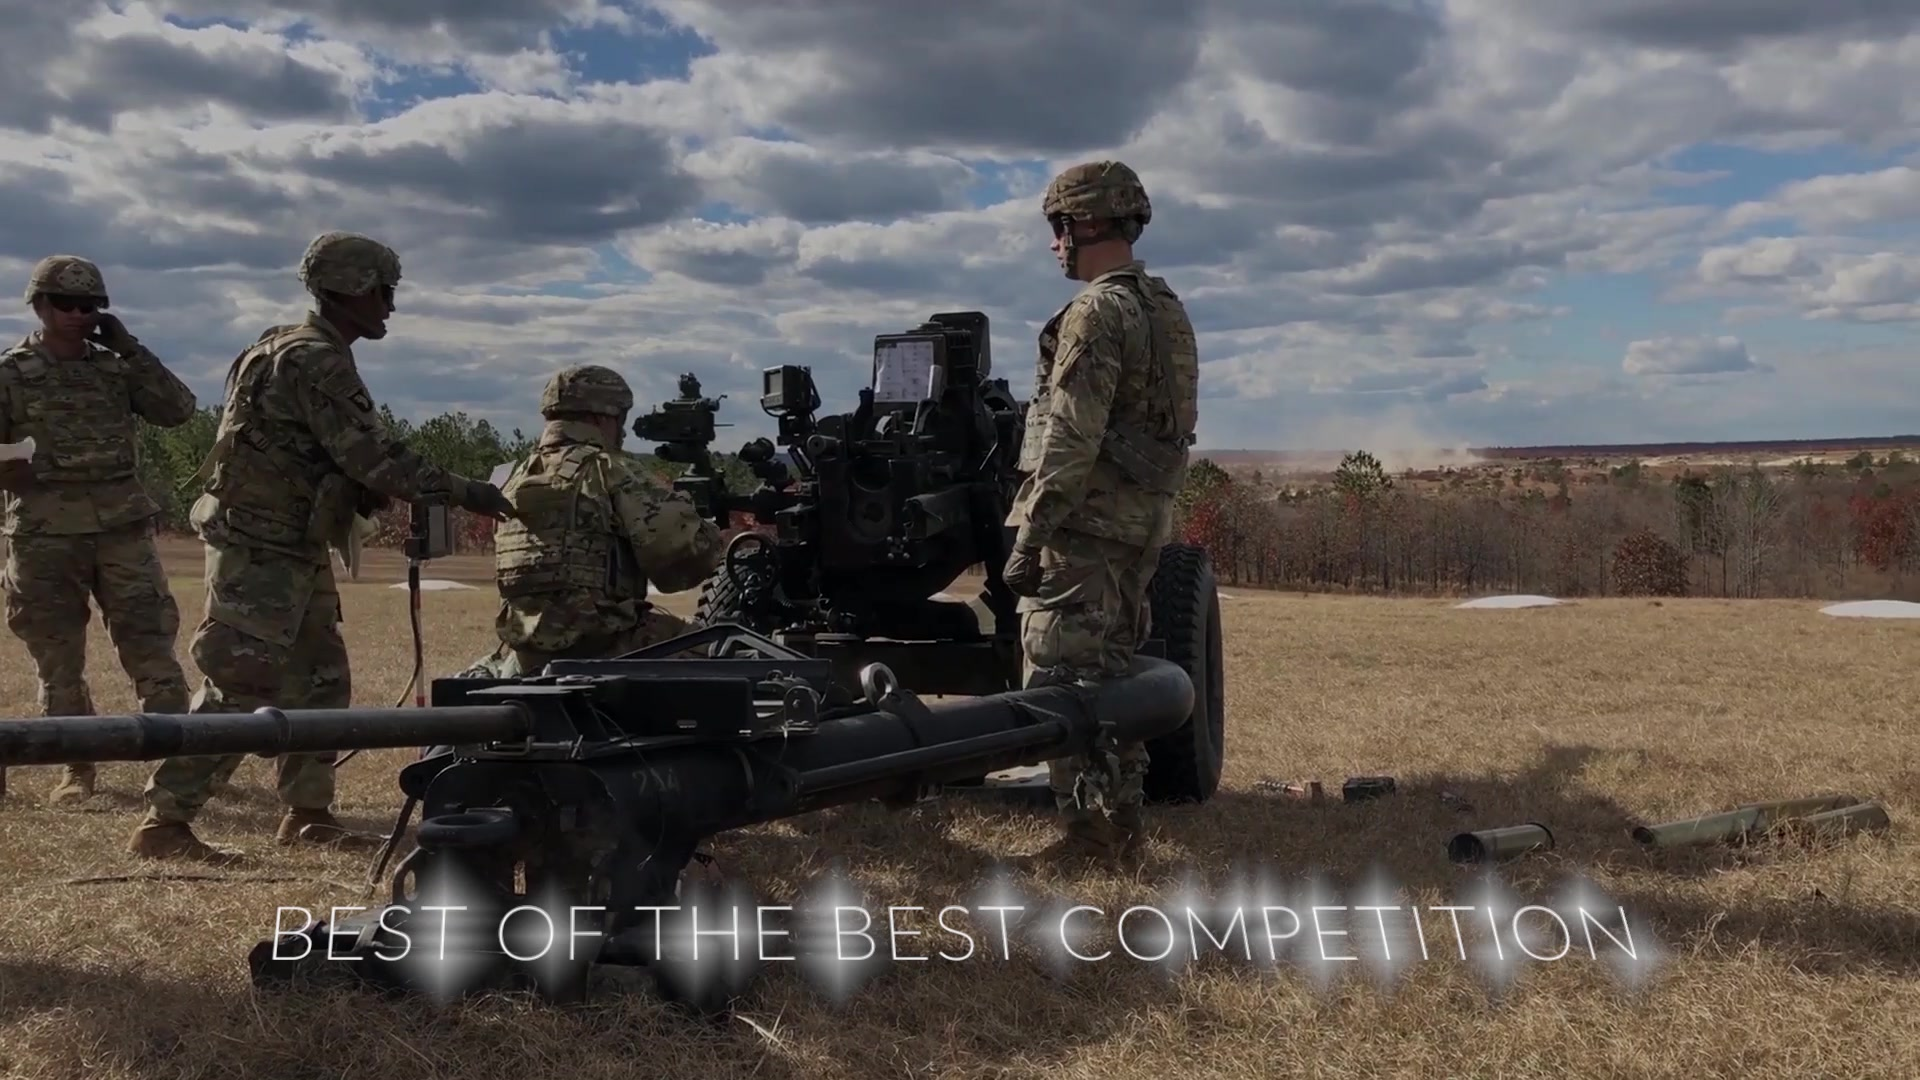 U.S. Army – 82nd Airborne Cannon Crew – Best of the Best Competition Oct. 22, 2019